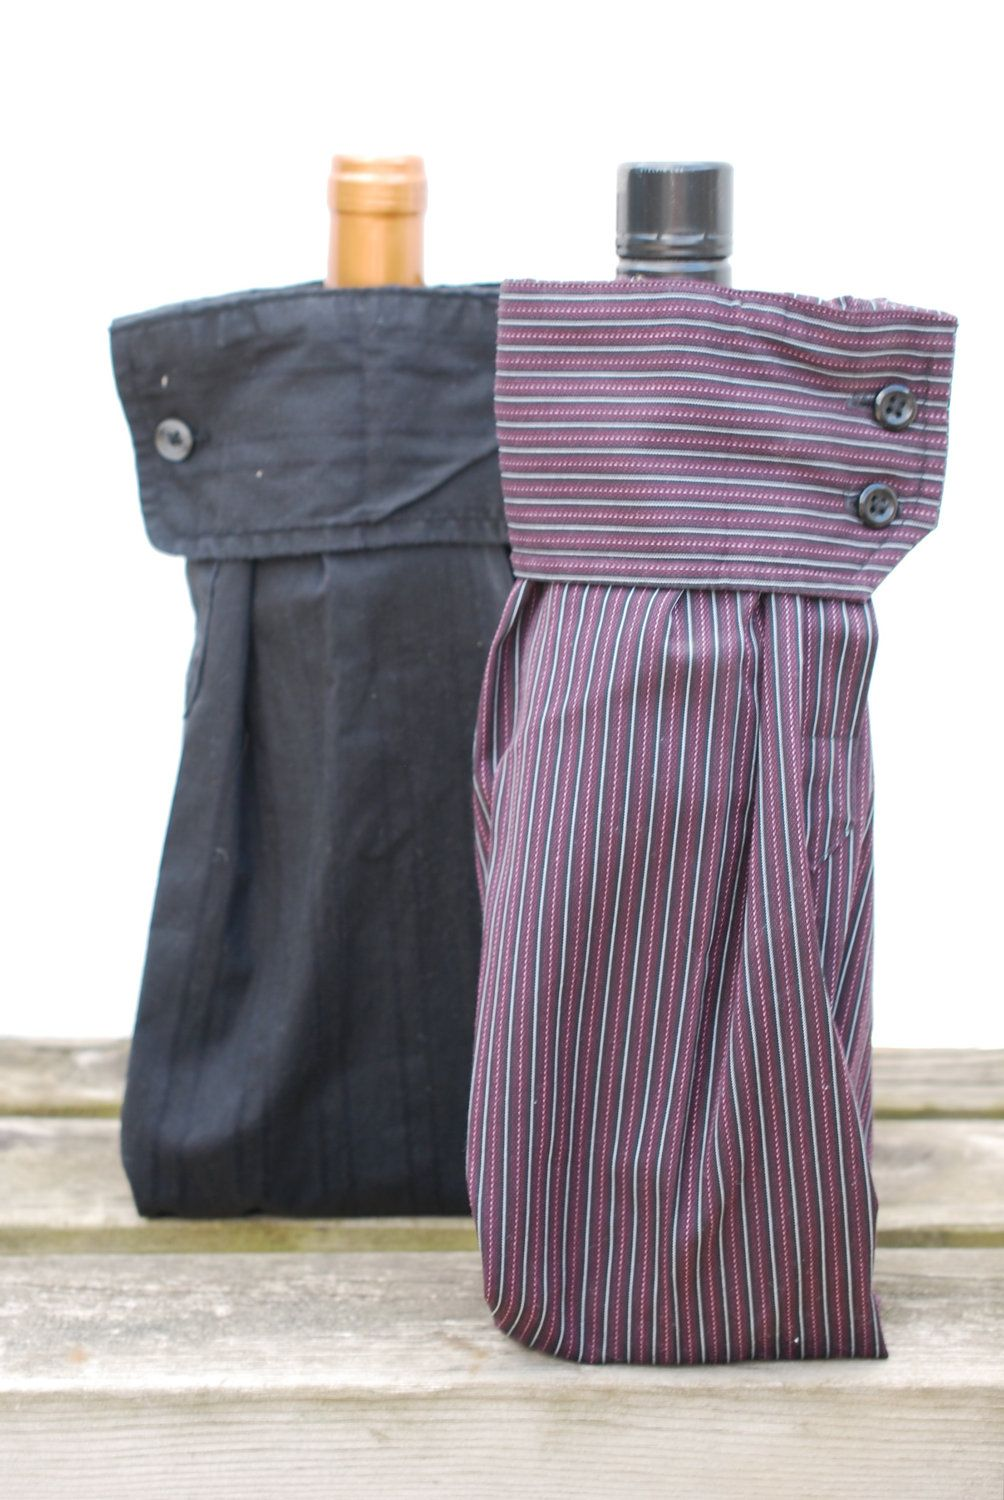 2 Upcycled Men's Dress Shirt Wine Sleeve Gift Bags Give